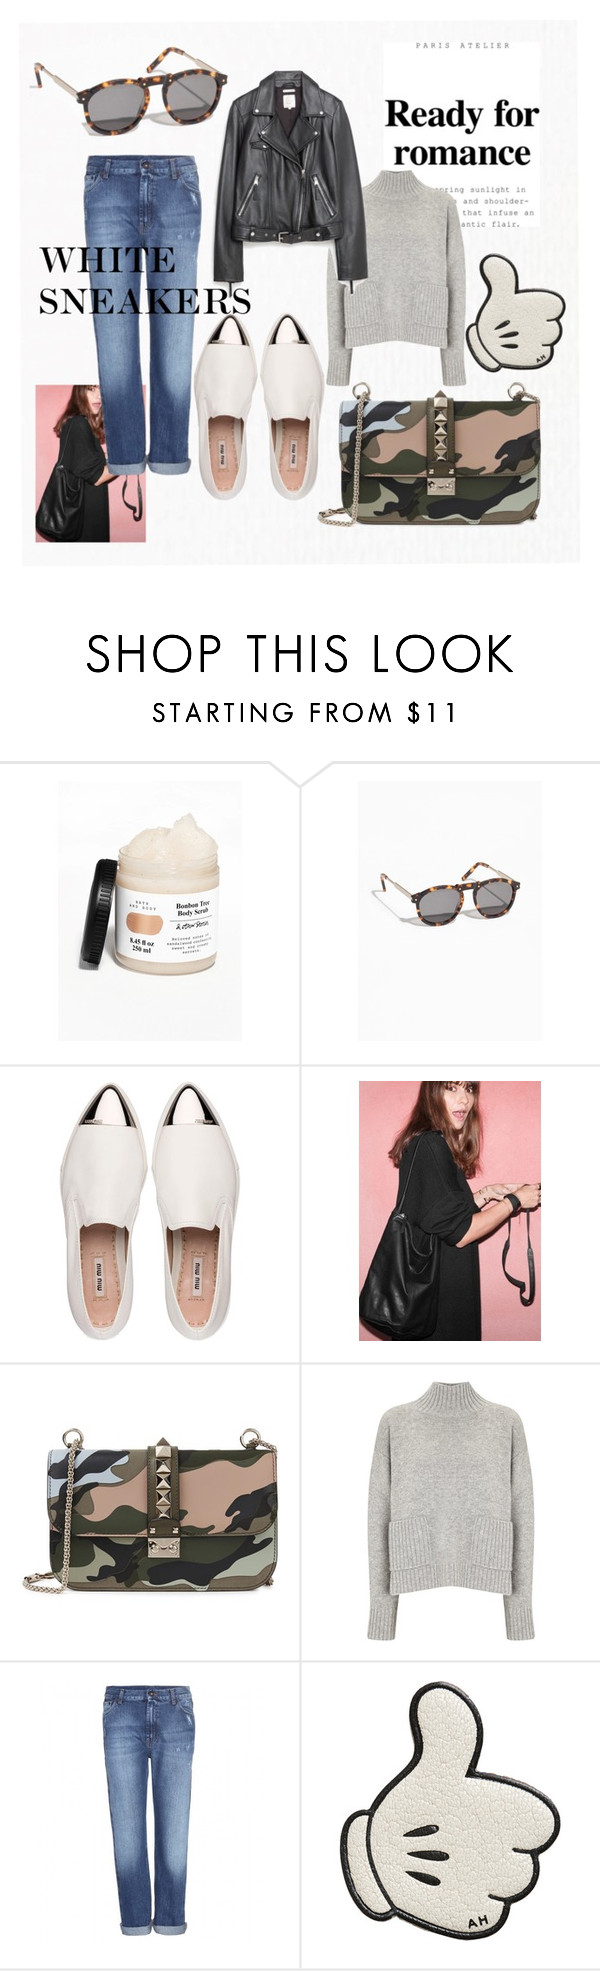 """""""HELLO THERE SPRING"""" by notusing ❤ liked on Polyvore featuring Miu Miu, Valentino, Frame Denim, McQ by Alexander McQueen, Anya Hindmarch, Zara and whitesneakers"""